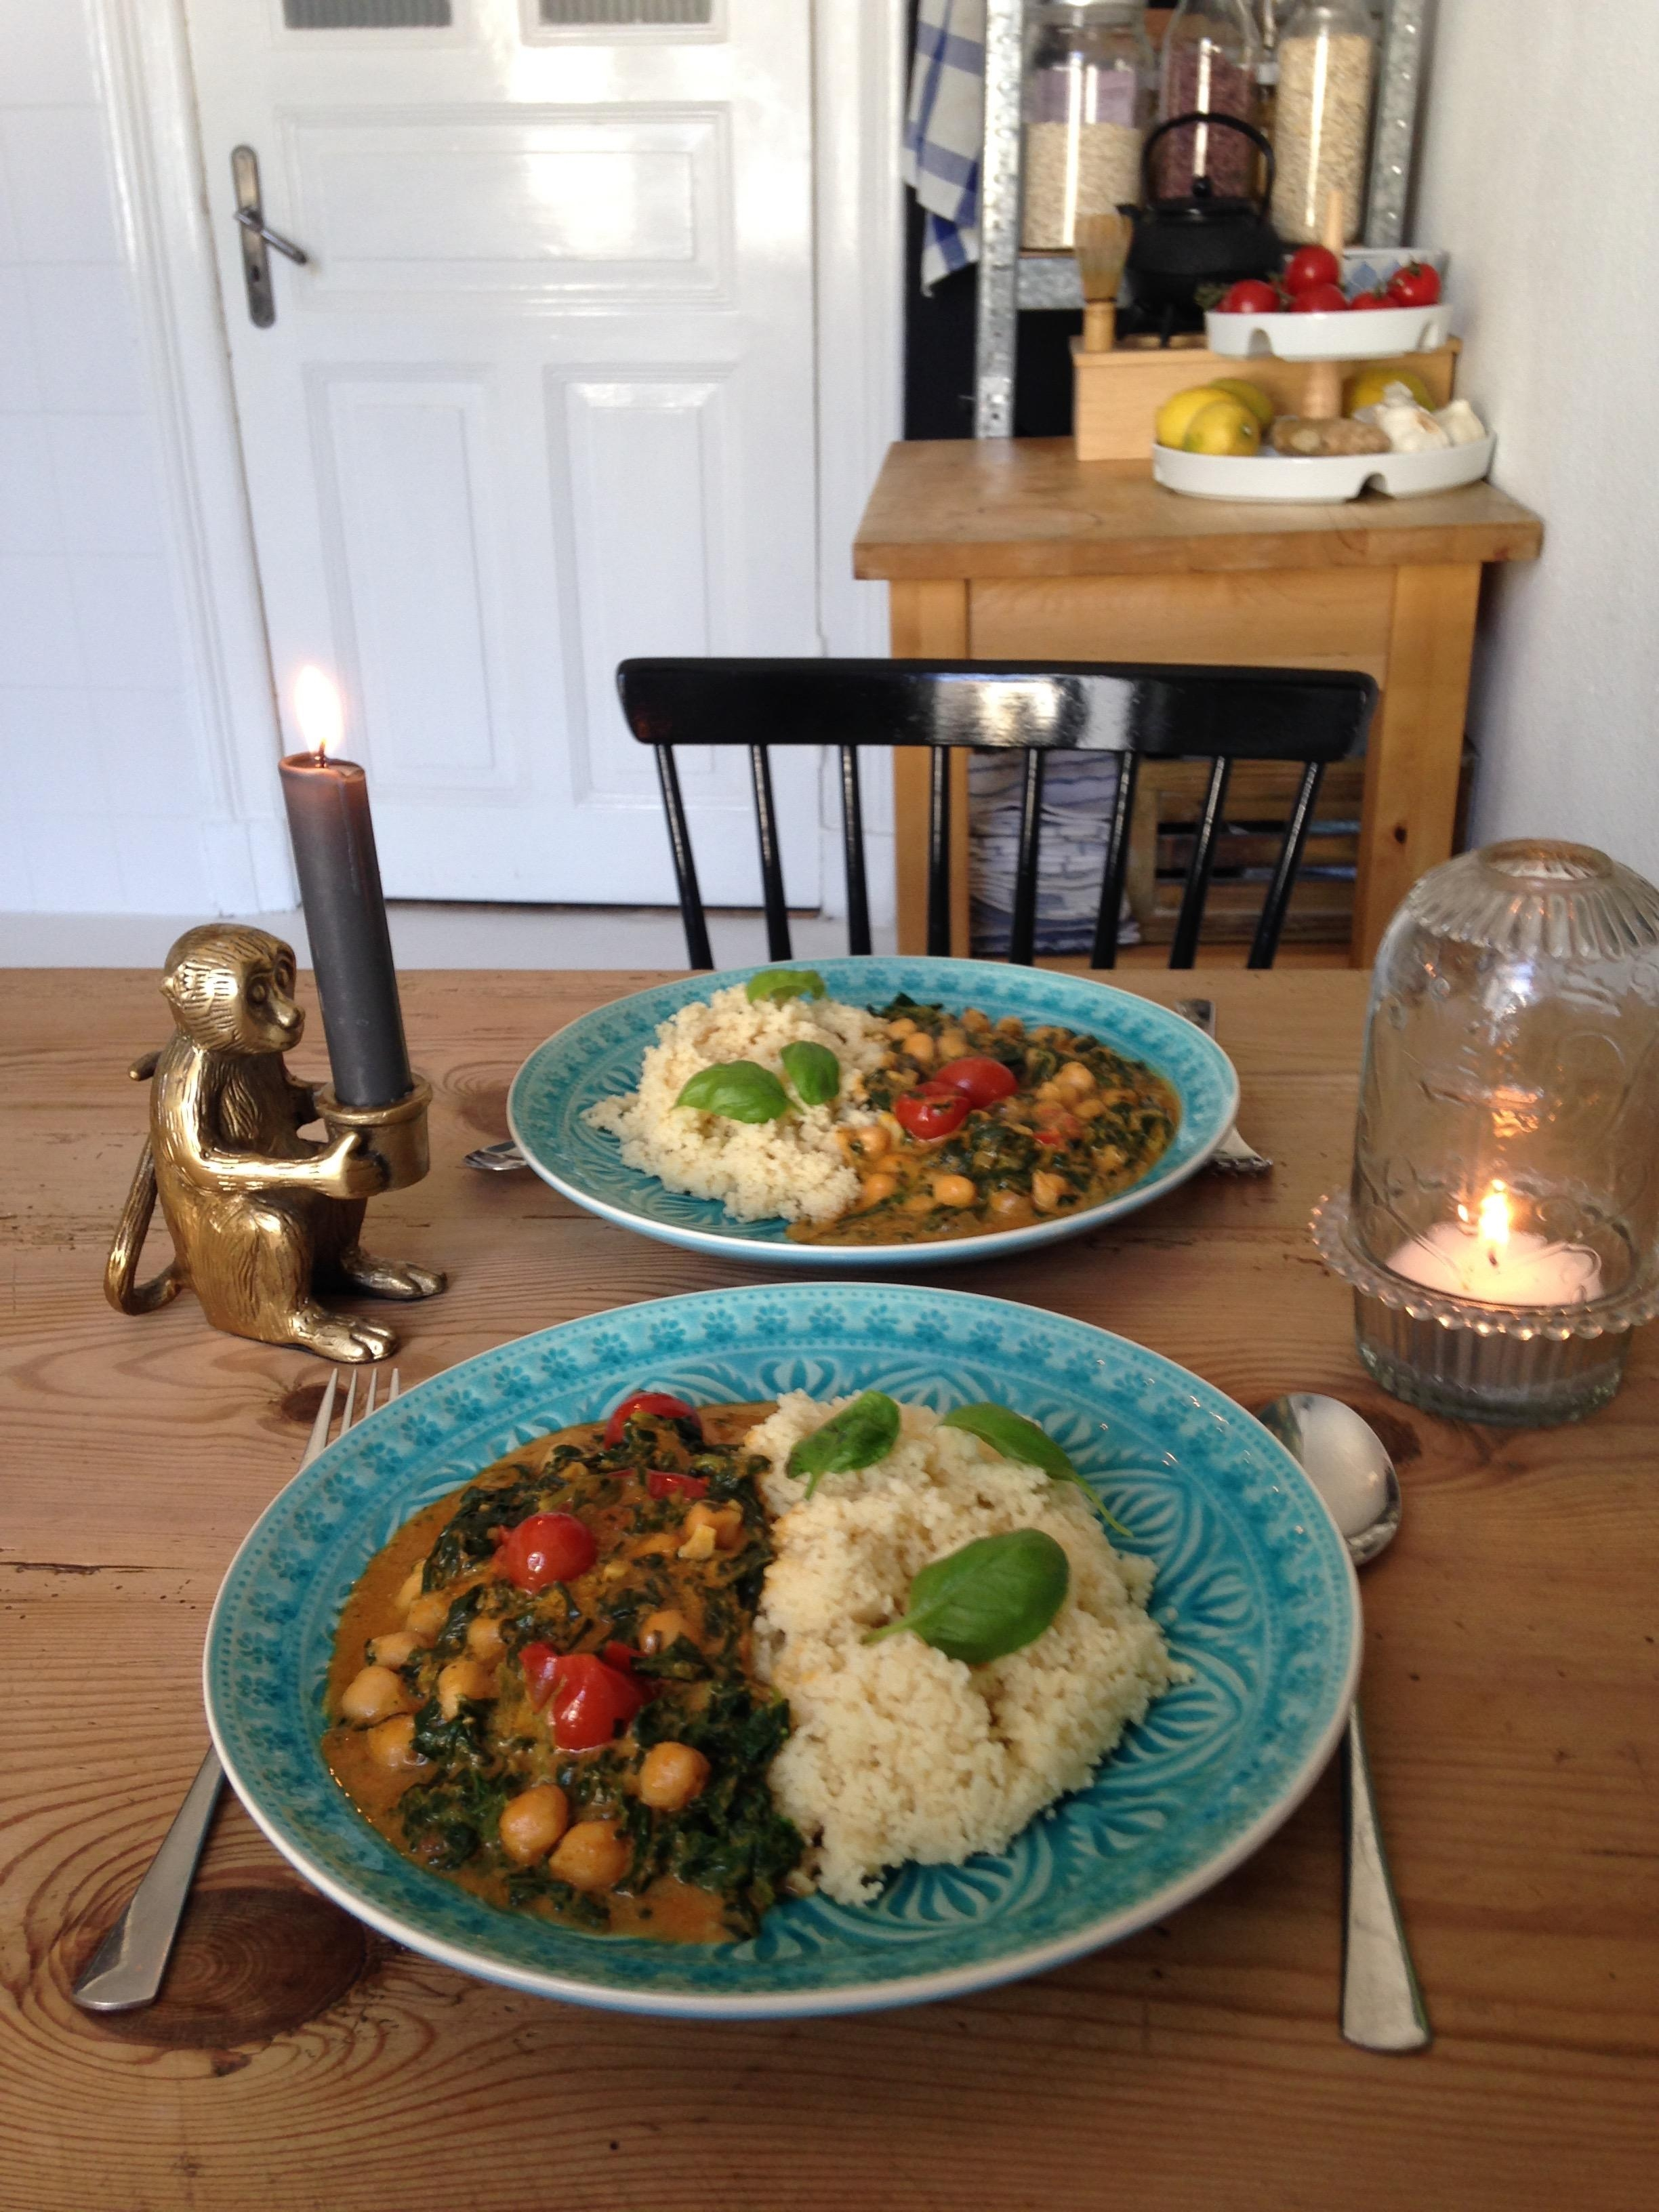 Spicy chickpeas  tomato  spinach  tajine with couscous   delicious  tajine plantbased vegan kueche meal  3e546786 4593 48b4 9d66 7ed77b1f46d1